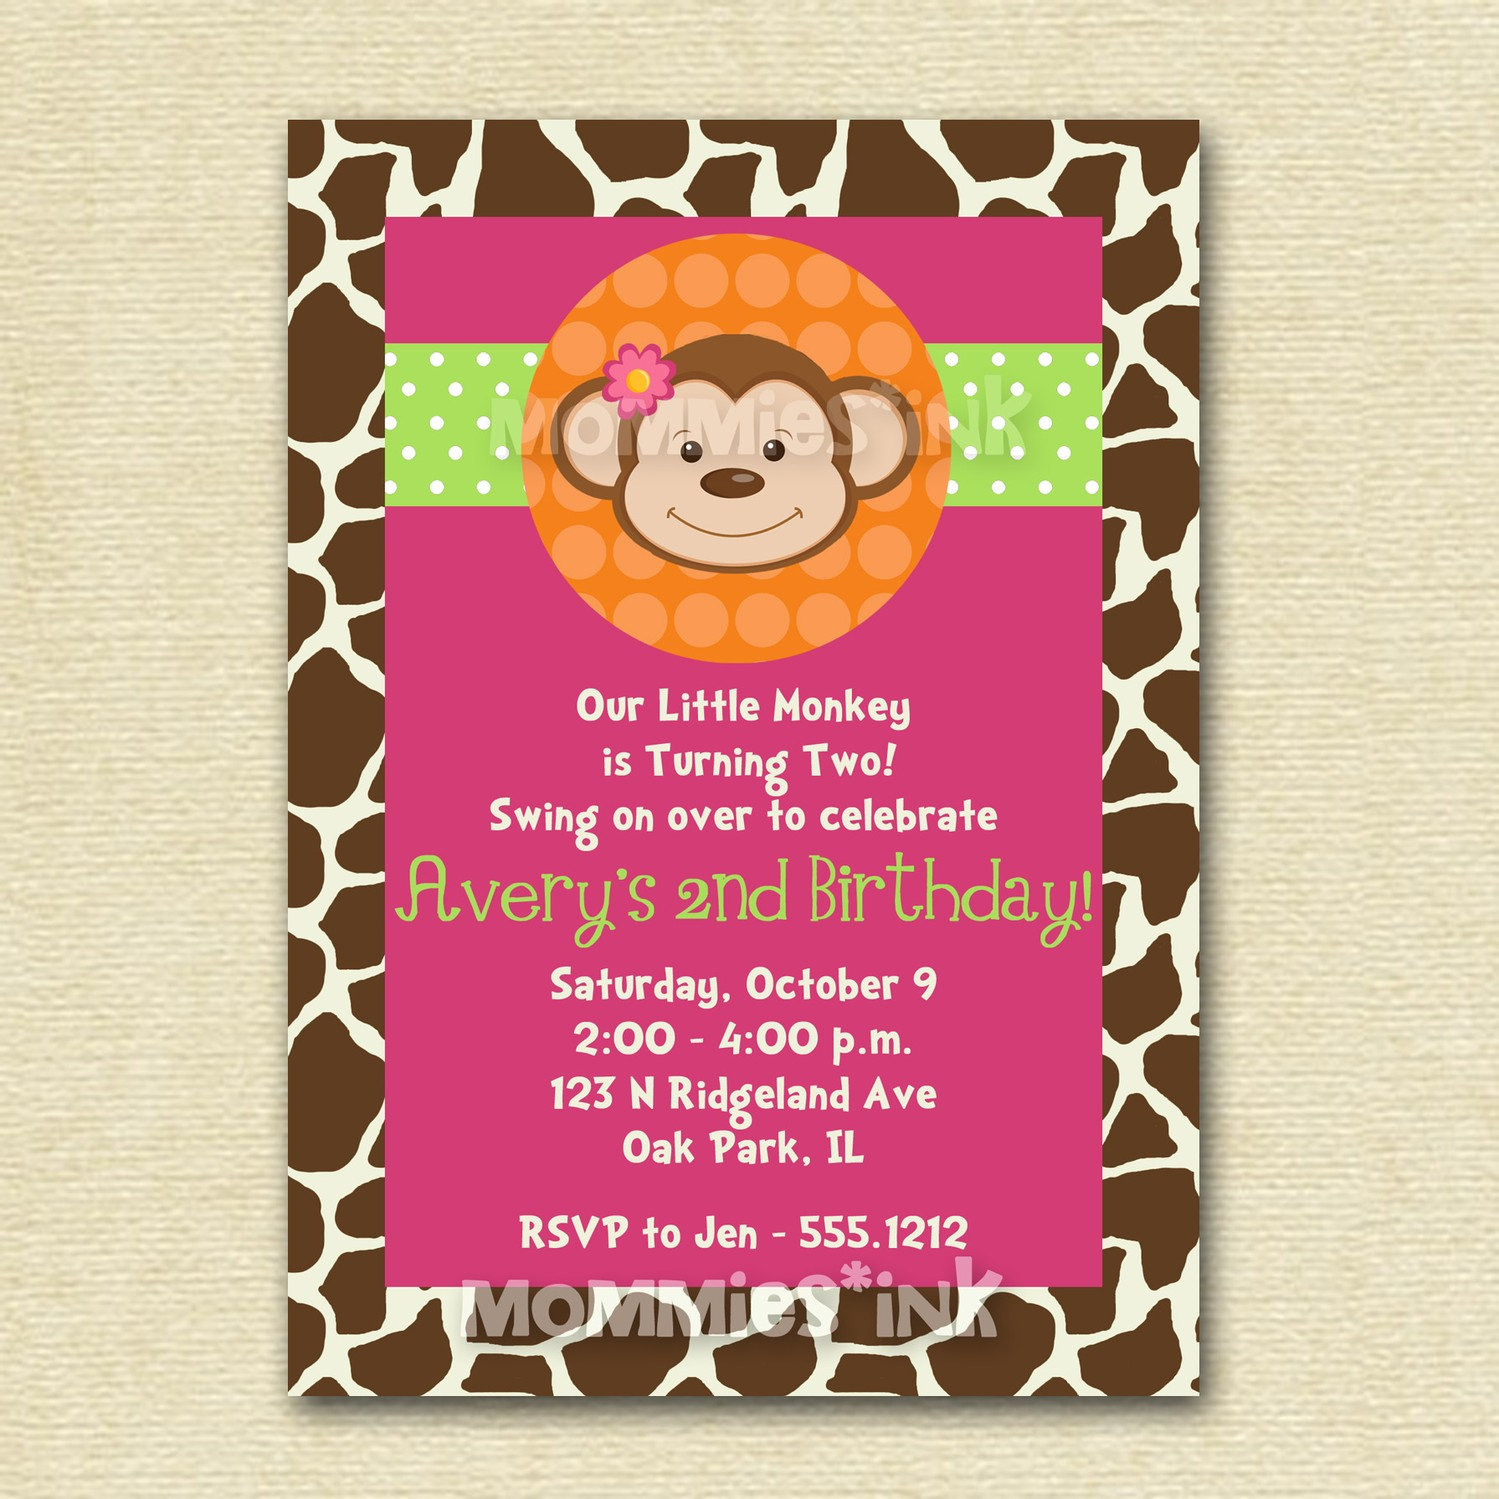 Monkey love party invitations - photo#6